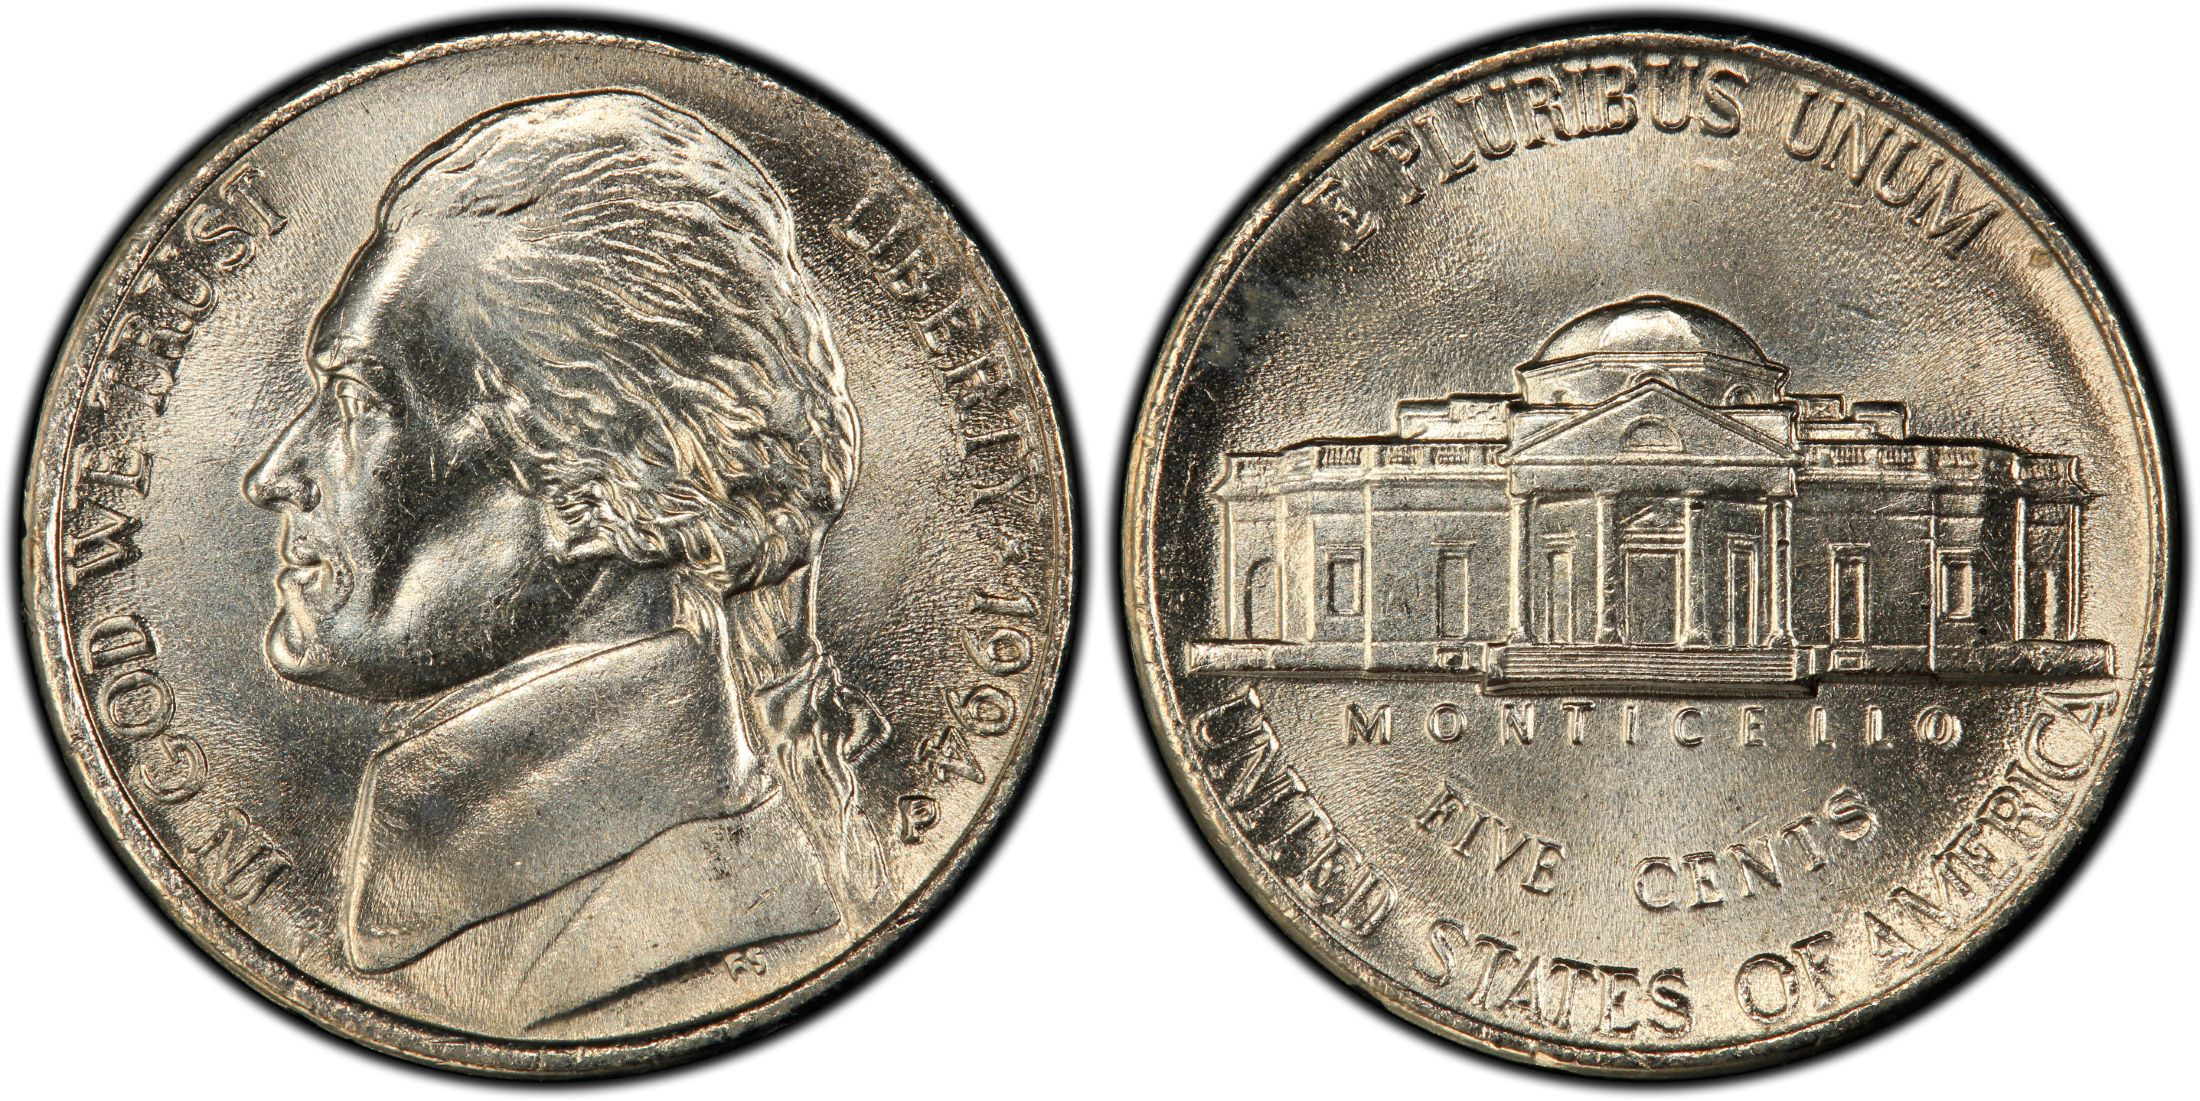 1993-P NGC MS65 6FS FULL STEPS JEFFERSON NICKEL YOU PICK THE ONE YOU WANT